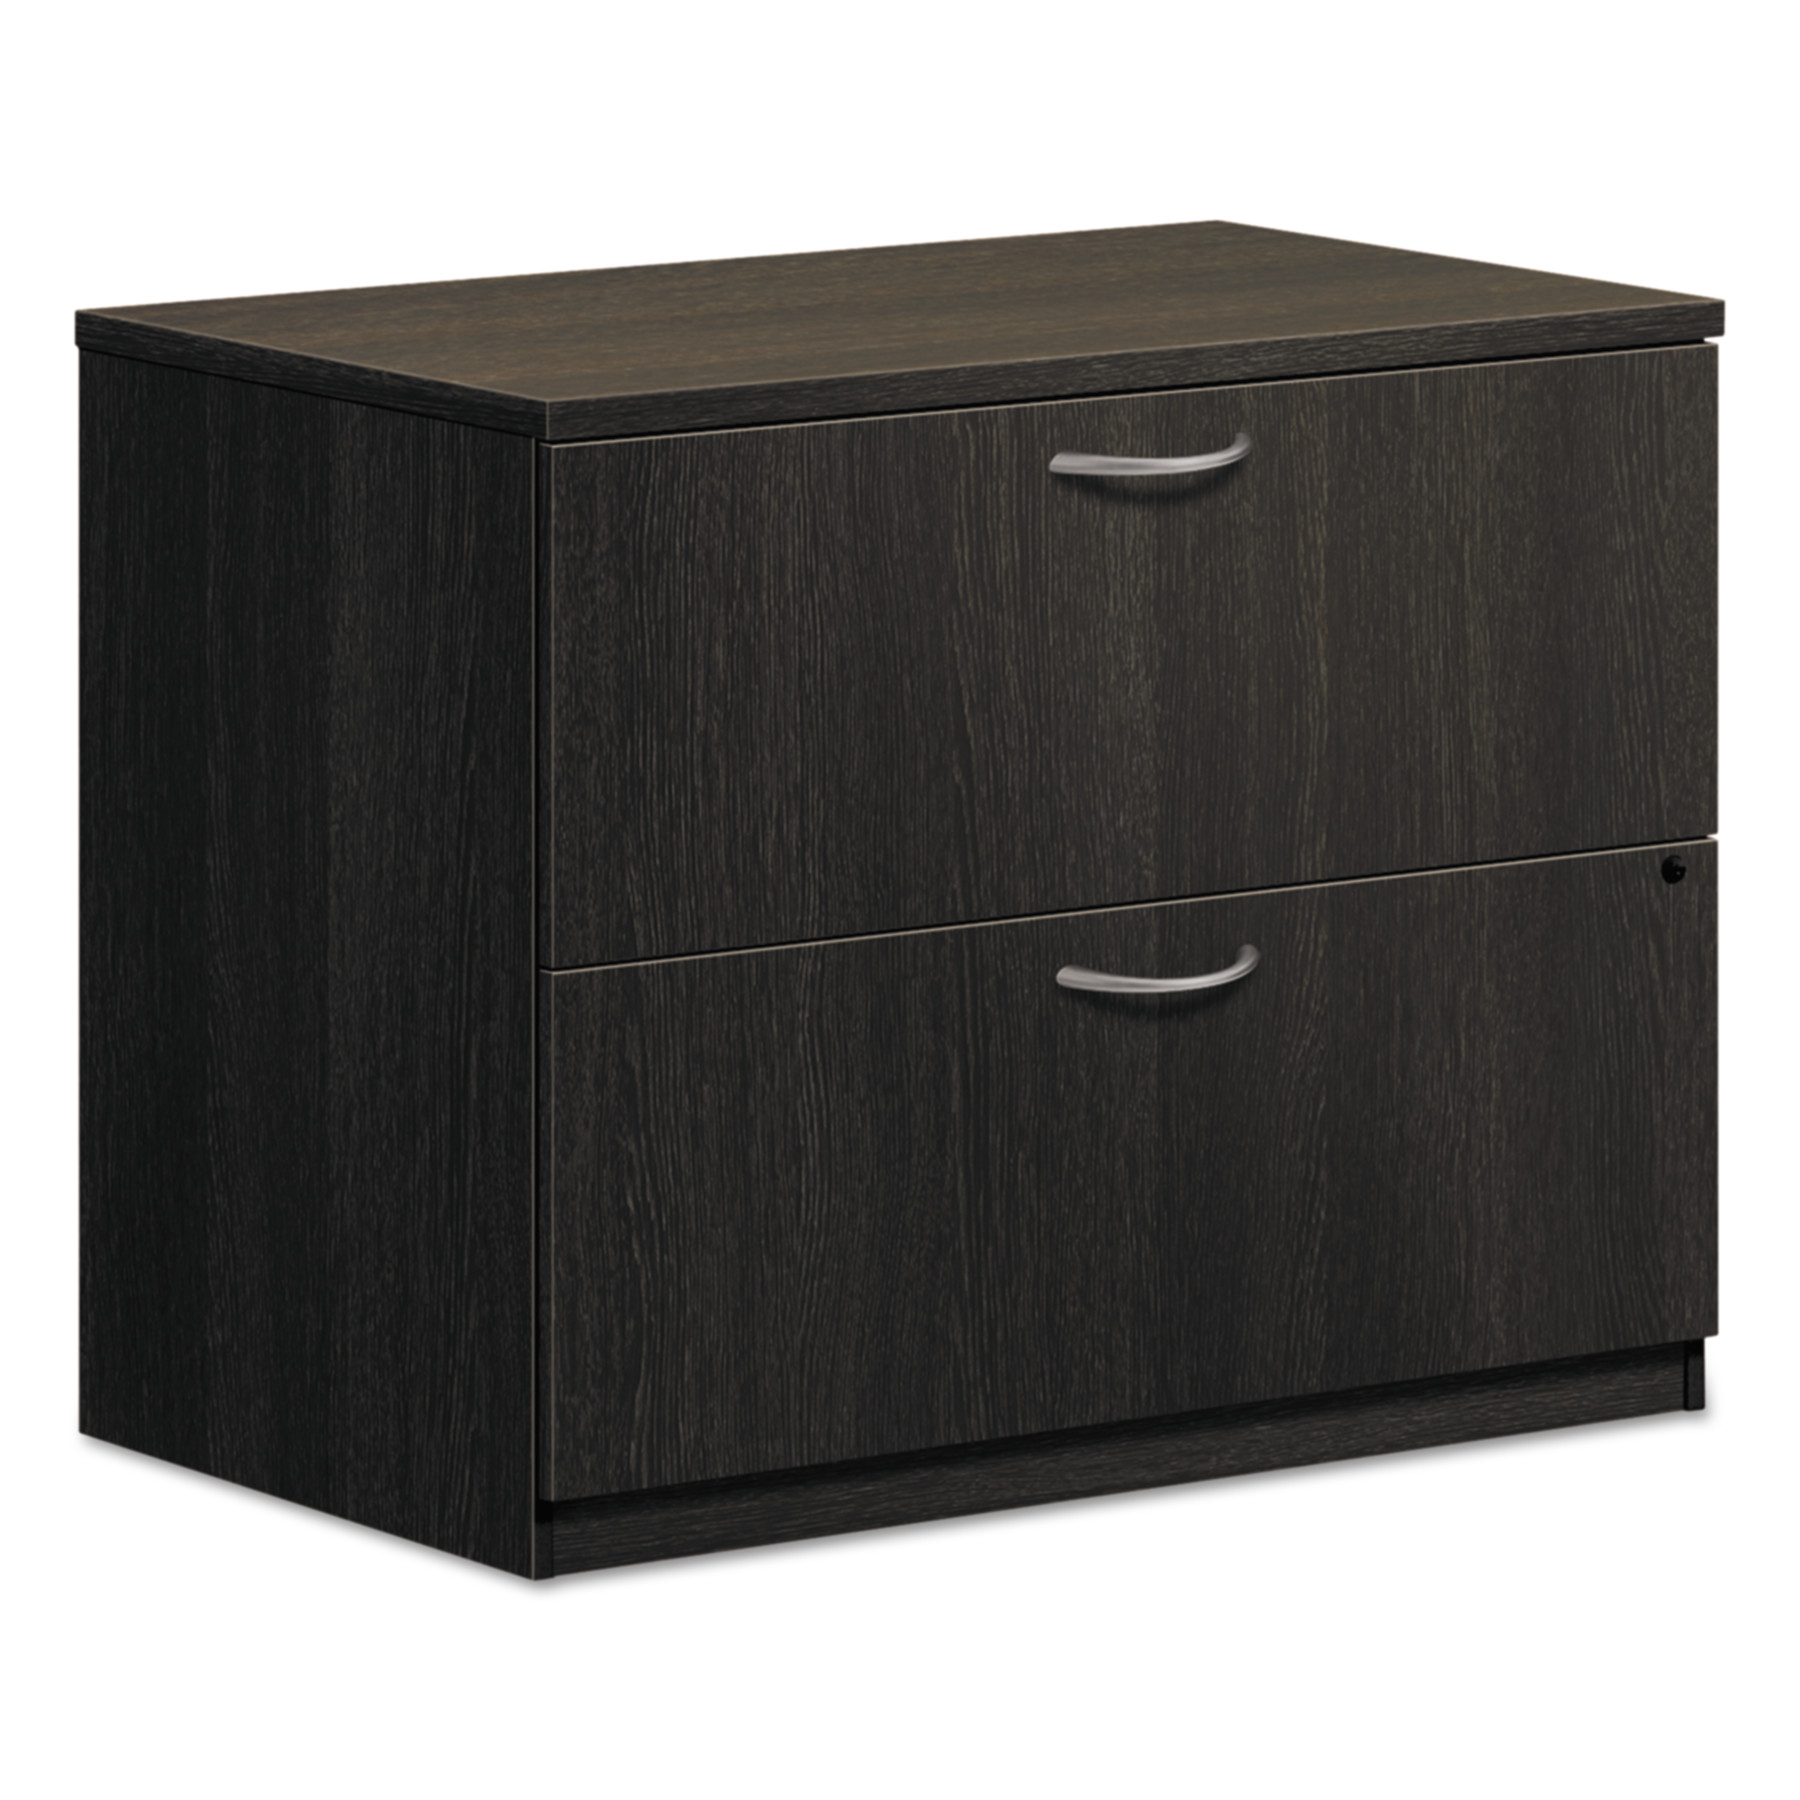 Basyx 2 Drawers Lateral Lockable Filing Cabinet Espresso  sc 1 st  Walmart.com & Basyx 2 Drawers Lateral Lockable Filing Cabinet Espresso - Walmart.com